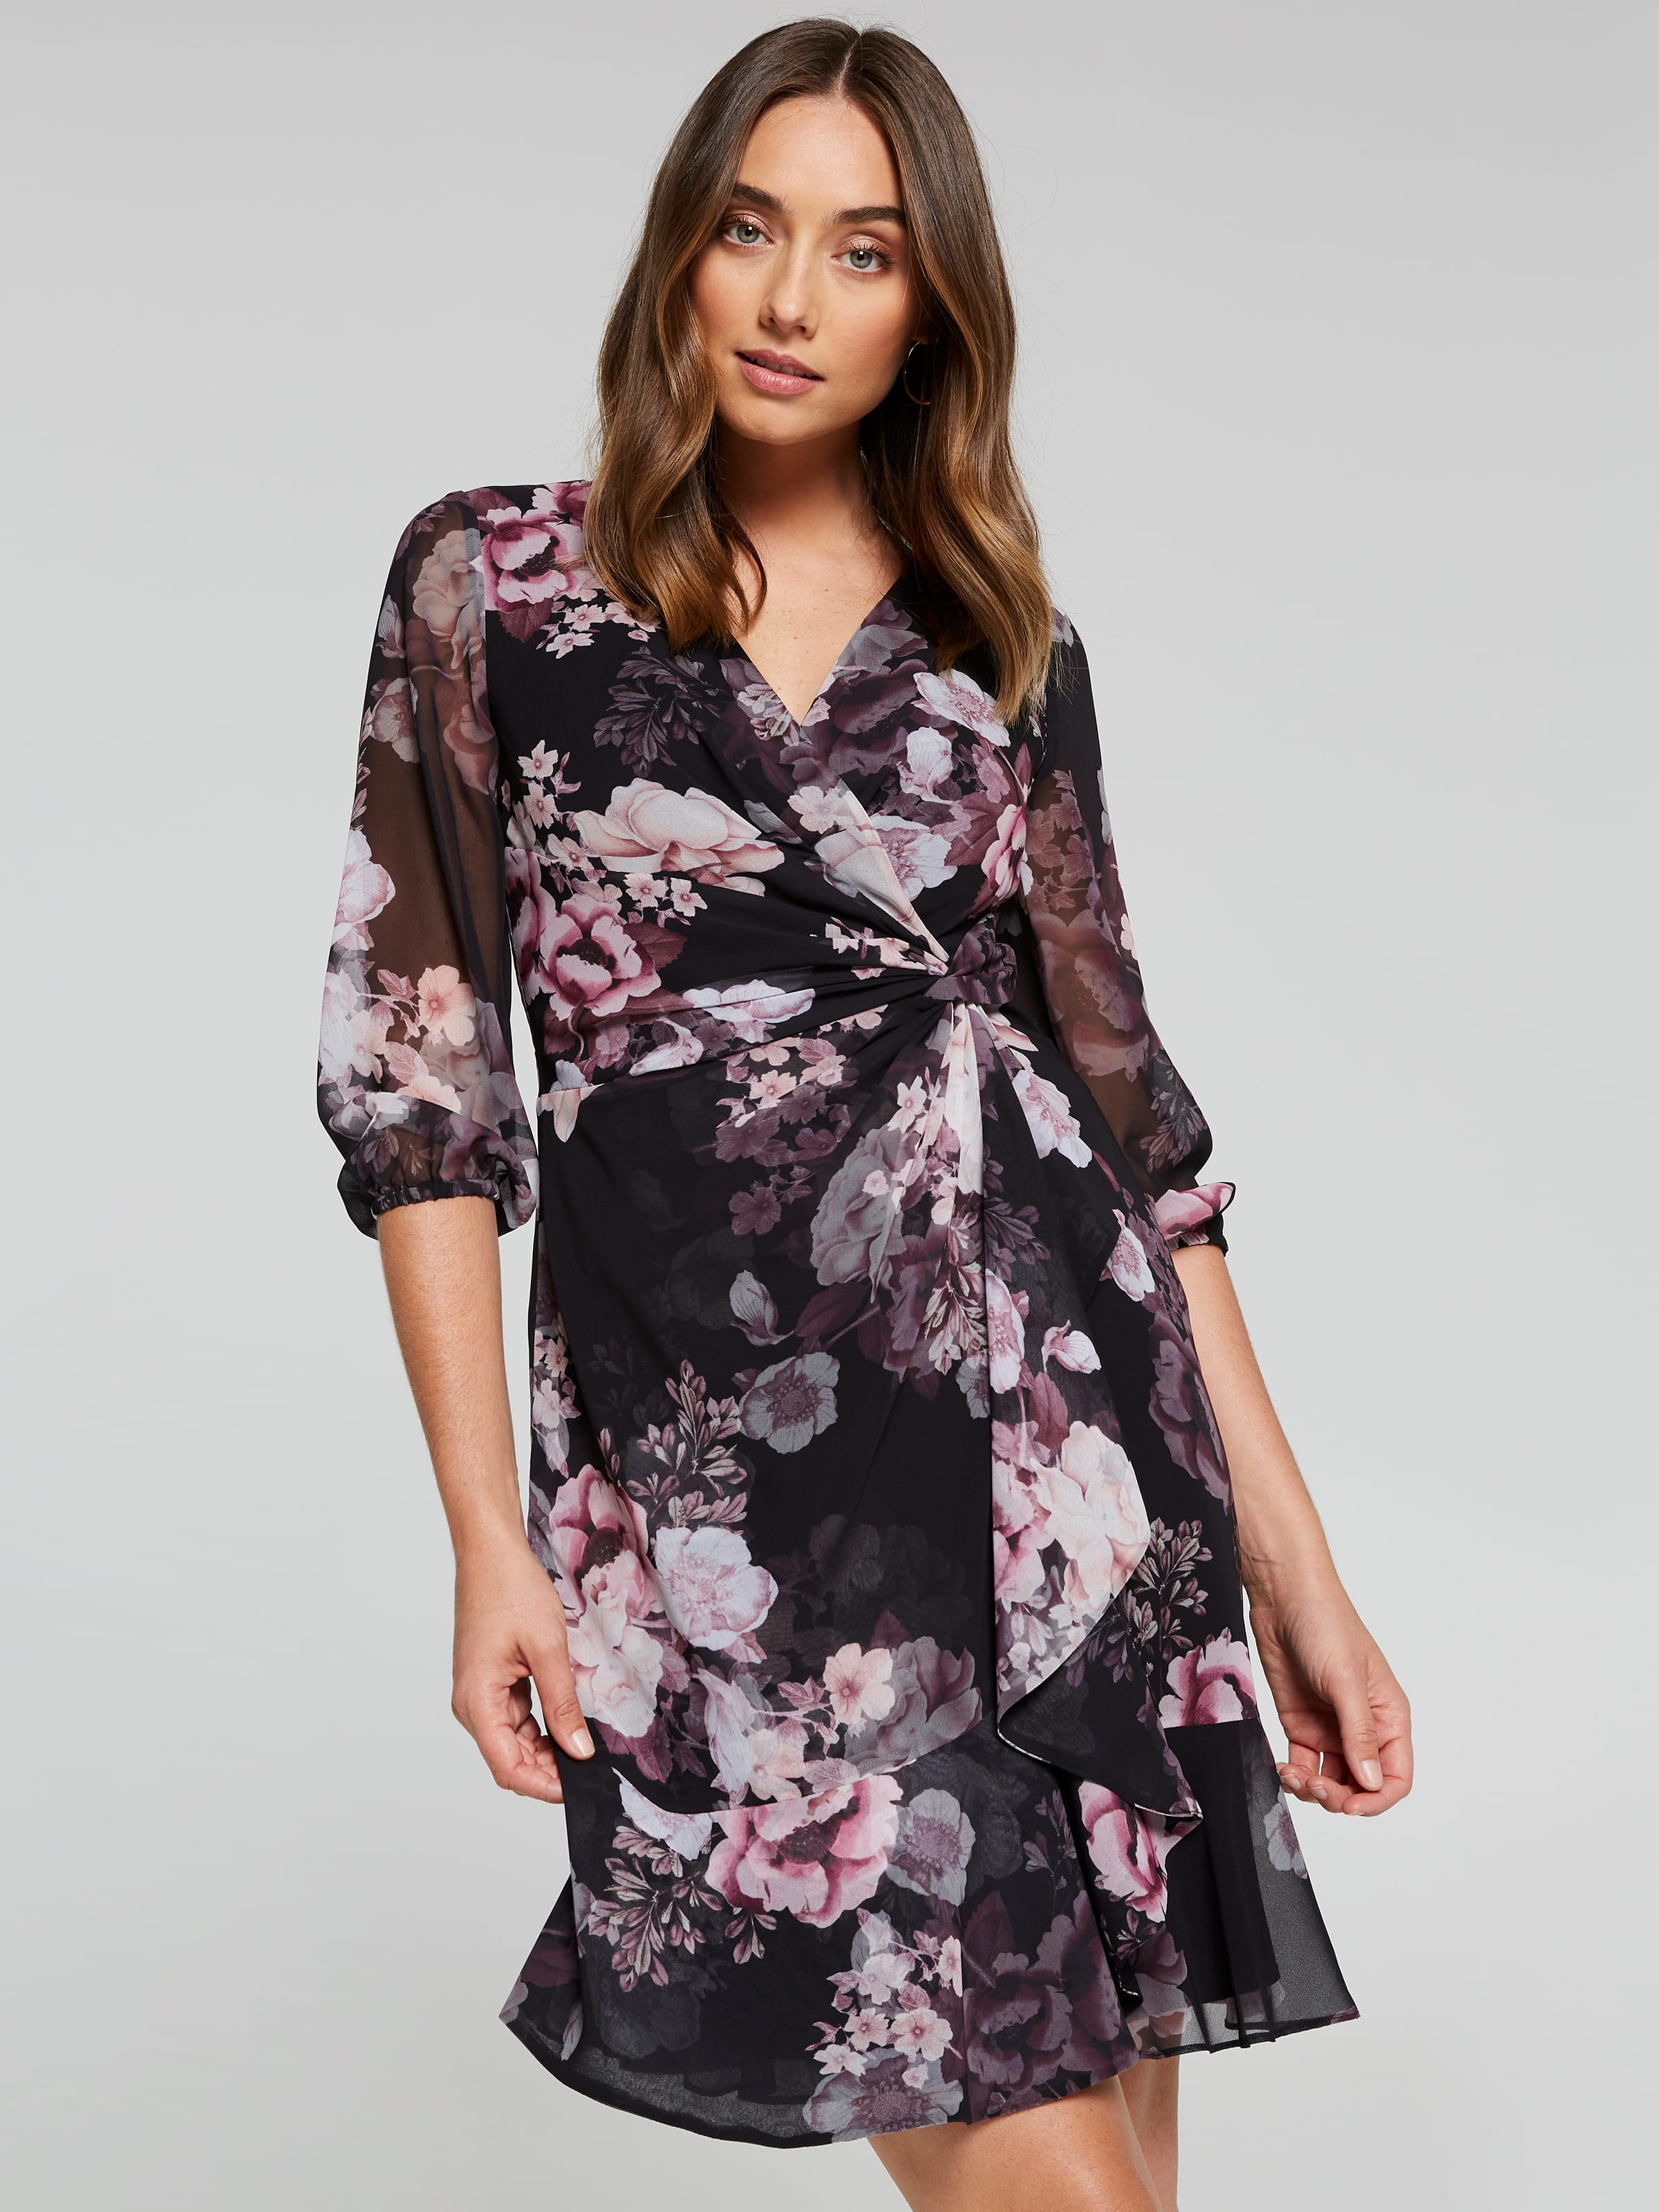 Image of Jacqui E Australia Jacqui E 3/4 Sleeve Keira Ruffle Wrap Dress